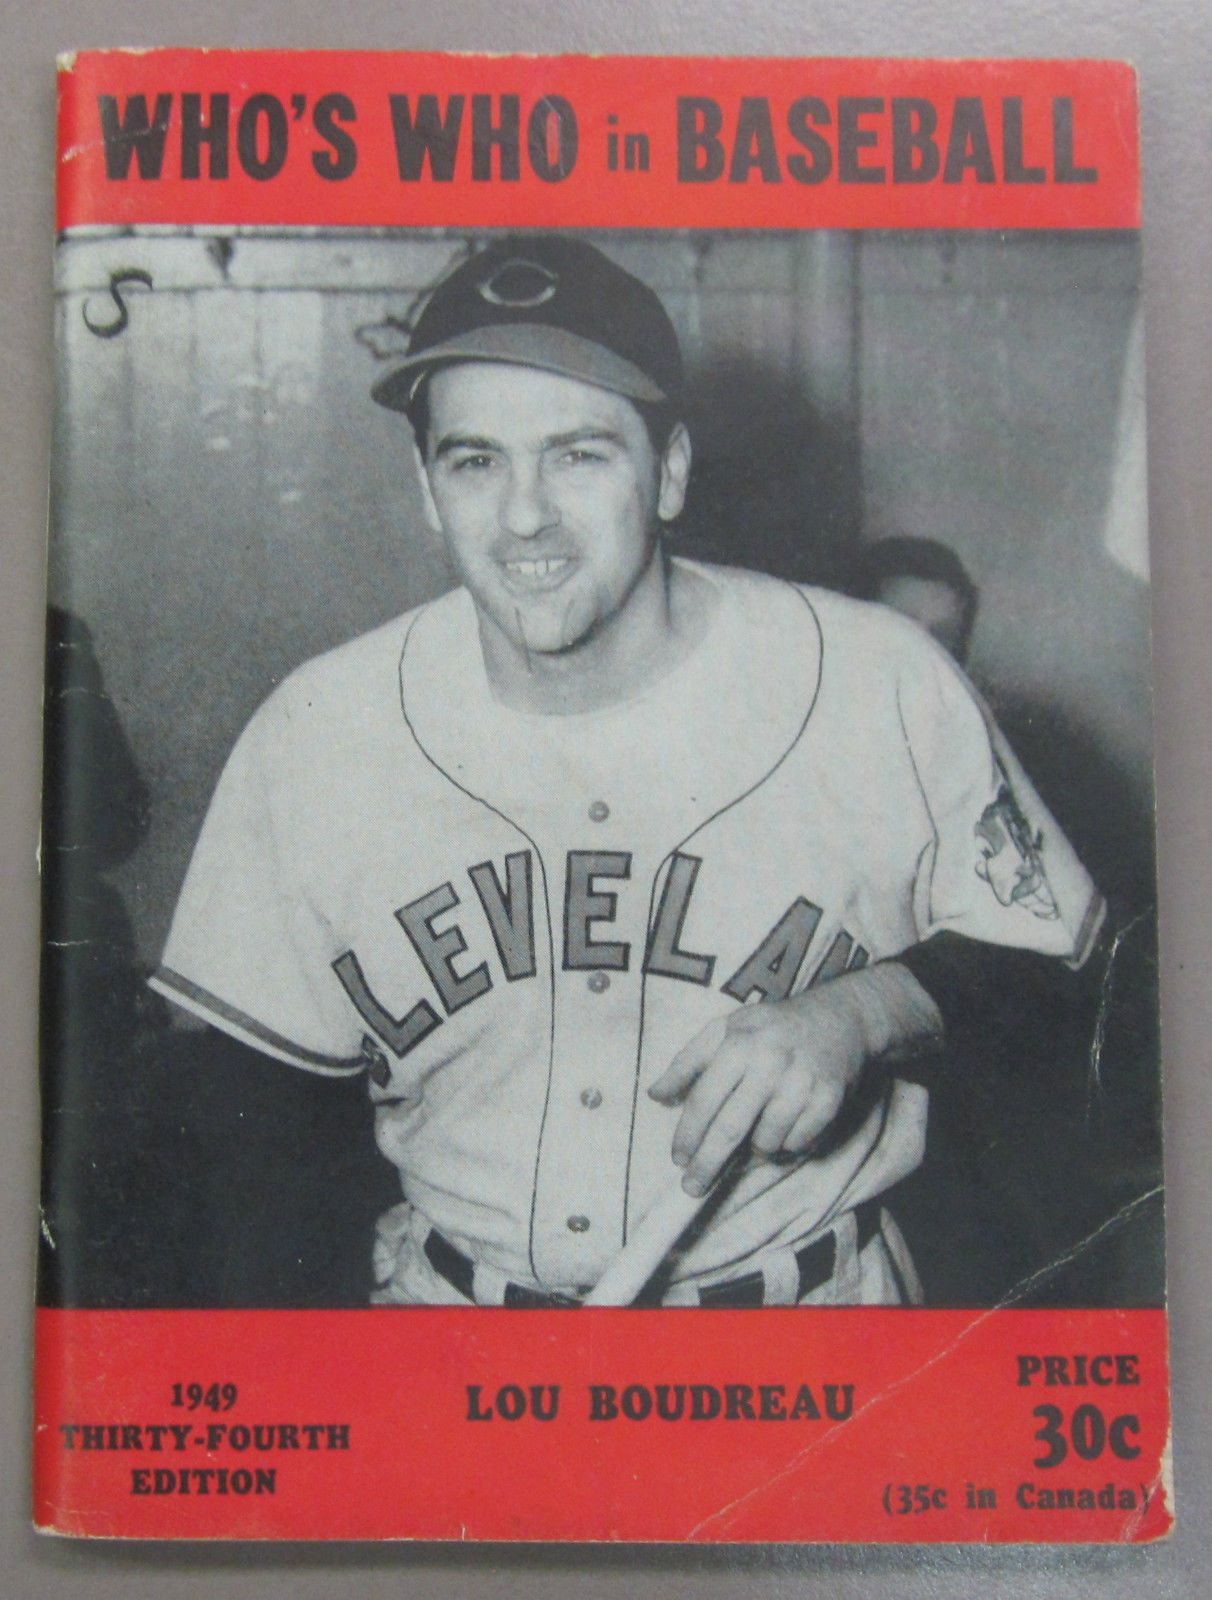 1949 Who's Who in Baseball Lou Boudreau (With images